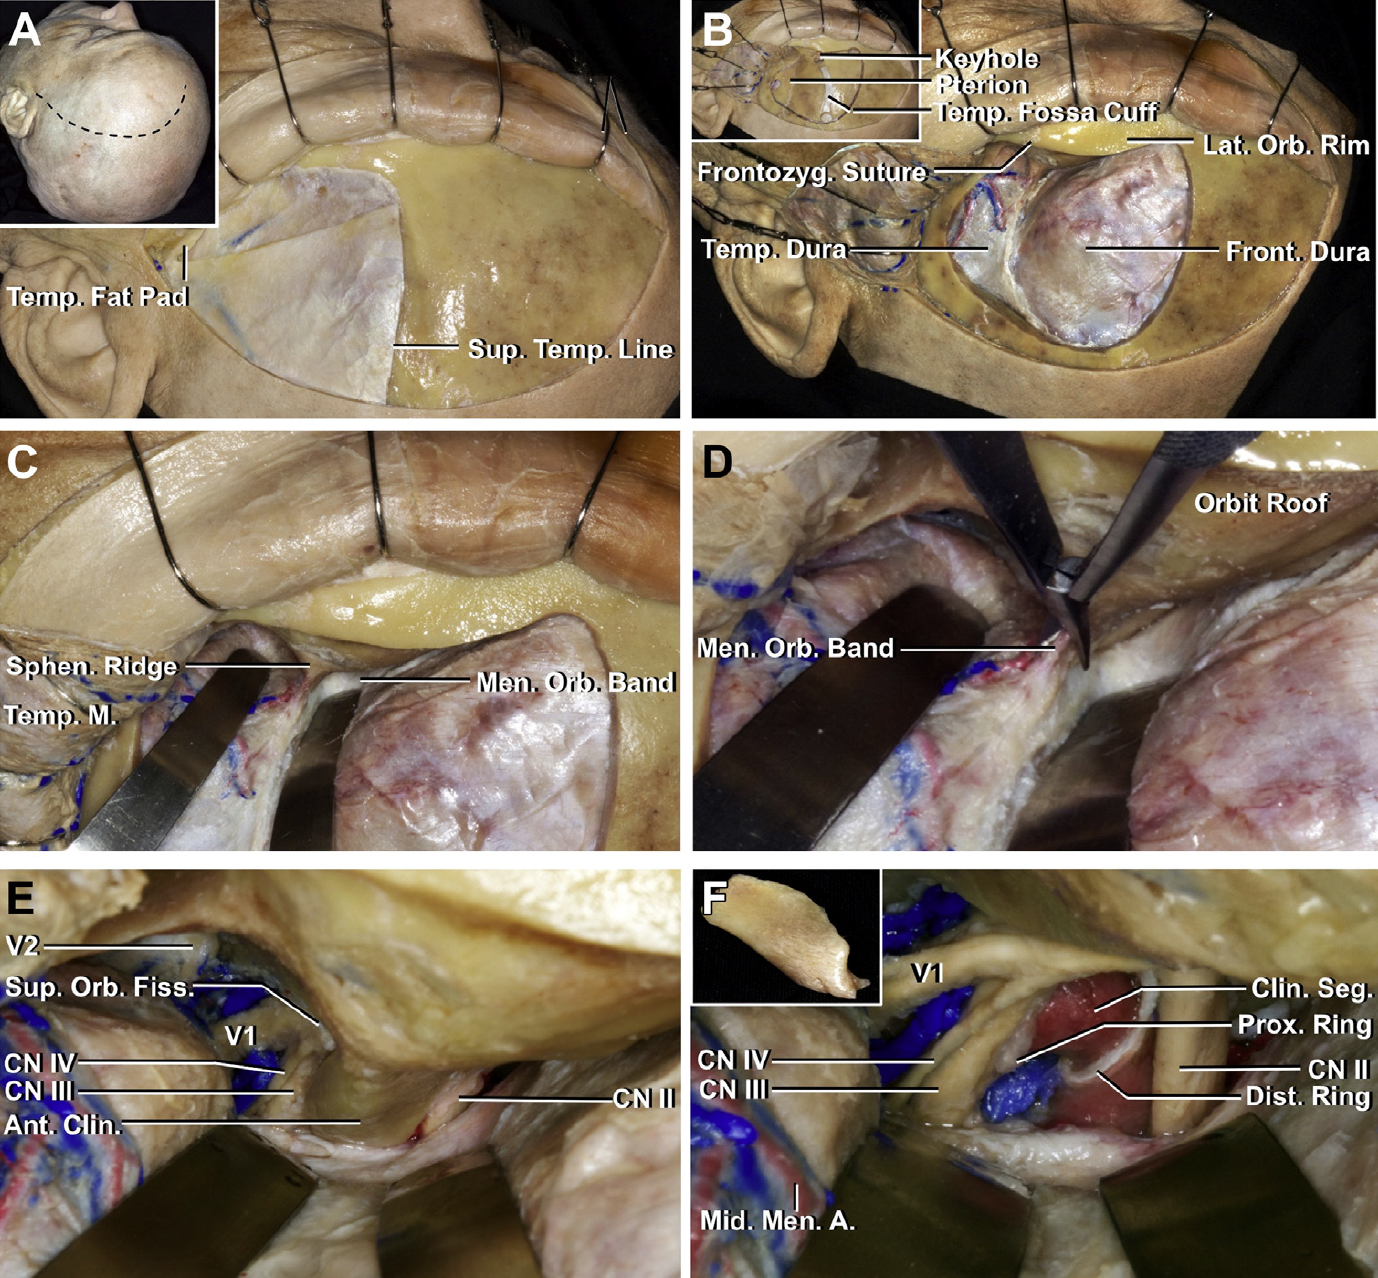 Figure 3. Surgical view of a stepwise left anterior clinoid removal and optic nerve decompression through the pterional approach. (A) The inset (upper left) show the position of the head and the site of the scalp incision. The scalp has been reflected using subgaleal dissection to expose the frontal bone and the upper part of the temporalis muscle and fascia. The facial nerve courses on the outer surface of the superficial temporal fascia above the zygomatic arch. The superficial layer of temporalis fascia has been divided just above the interfascial fat pad so that the superficial layer of temporalis fascia and the fat pad can be folded downward in continuity with the frontal pericranium to protect the branches of the facial nerve.29 (B) The inset (upper left) shows the burr holes and the craniotomy cuts for the bone flap. A cuff of temporalis fascia is preserved along the superior temporal line to aid in anchoring the temporal muscle to the line at the time of closure. The keyhole burr hole is located above and behind the frontozygomatic suture. The bone flap has been elevated to expose the temporal and frontal dura. (C) The sphenoid ridge has been flattened, and a thin shell of bone has been left along the roof and lateral wall of the orbit. The frontal and temporal dura has been retracted to expose the meningoperiorbital band at the lateral edge of the superior orbital fissure. (D) The meningo-orbital band is cut using curved microscissors. (E) The dura has been elevated from the anterior clinoid process and along the anterior wall of the cavernous sinus to expose the entrance of the oculomotor, trochlear, and ophthalmic nerves in the superior orbital fissure, and V2 in the foramen rotundum. (F) The anterior clinoid process has been removed using no-drill technique (insert) to expose the clinoid segment of the internal carotid artery between the proximal and distal dural rings. The deeper part of the optic strut has also been removed using the no-drill technique